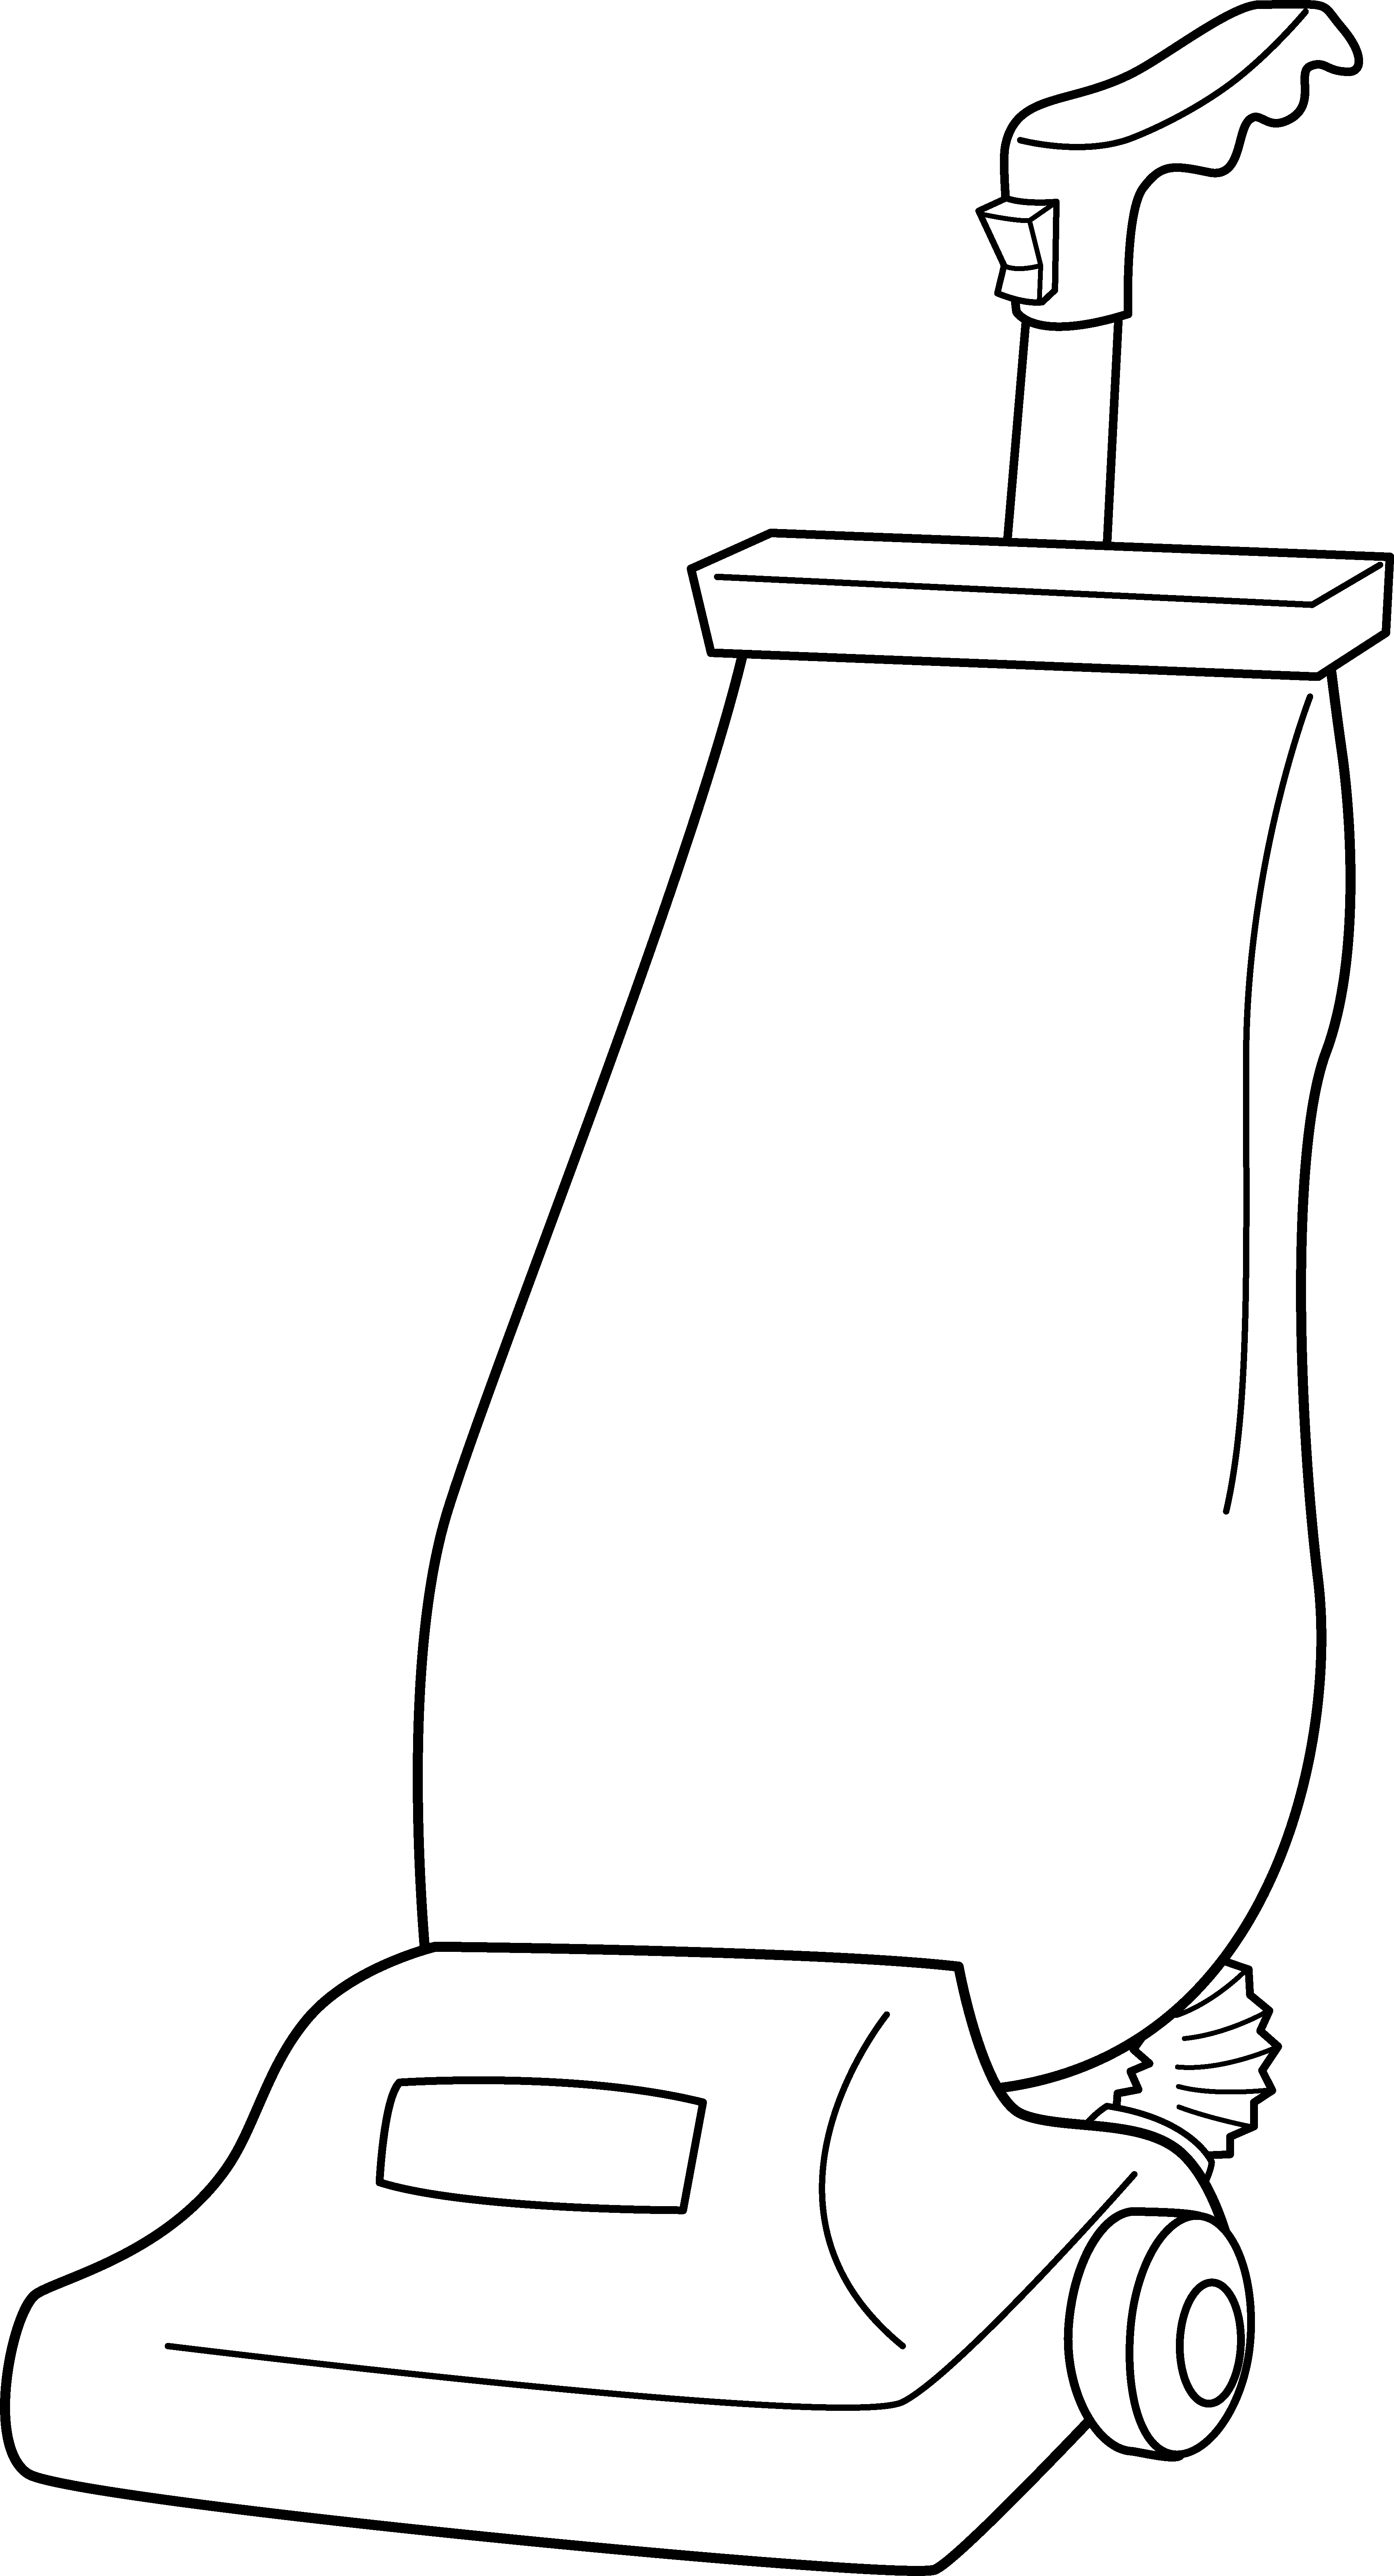 clipart black and white download Cleaner line art free. Vacuum clipart